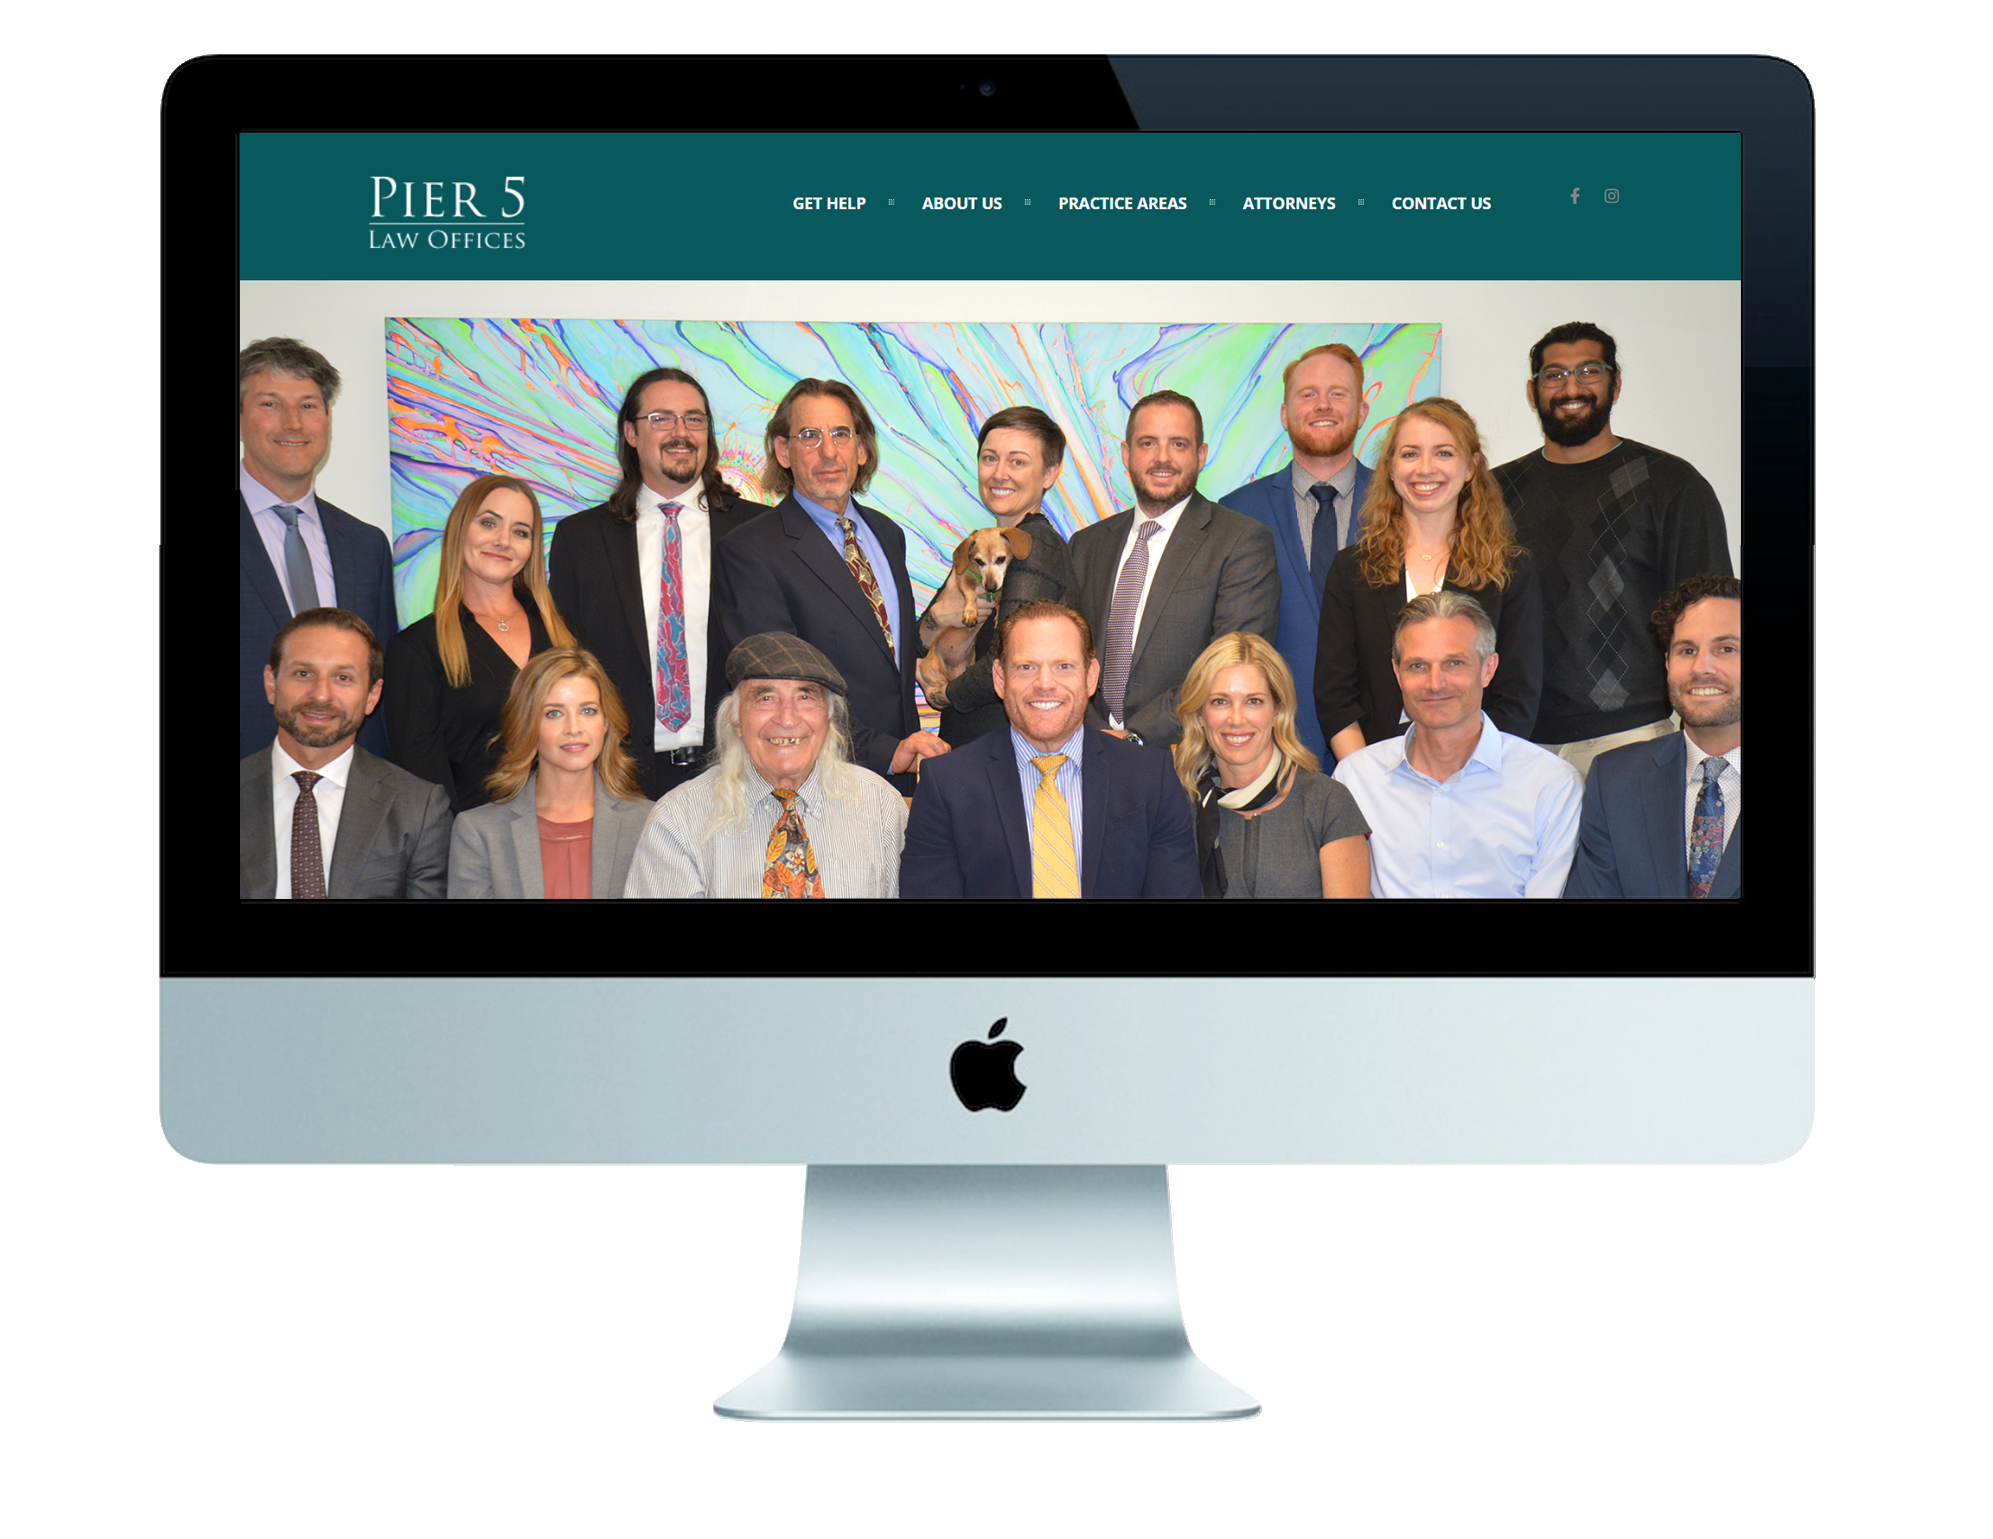 Future Bright Website Design - Pier 5 Law